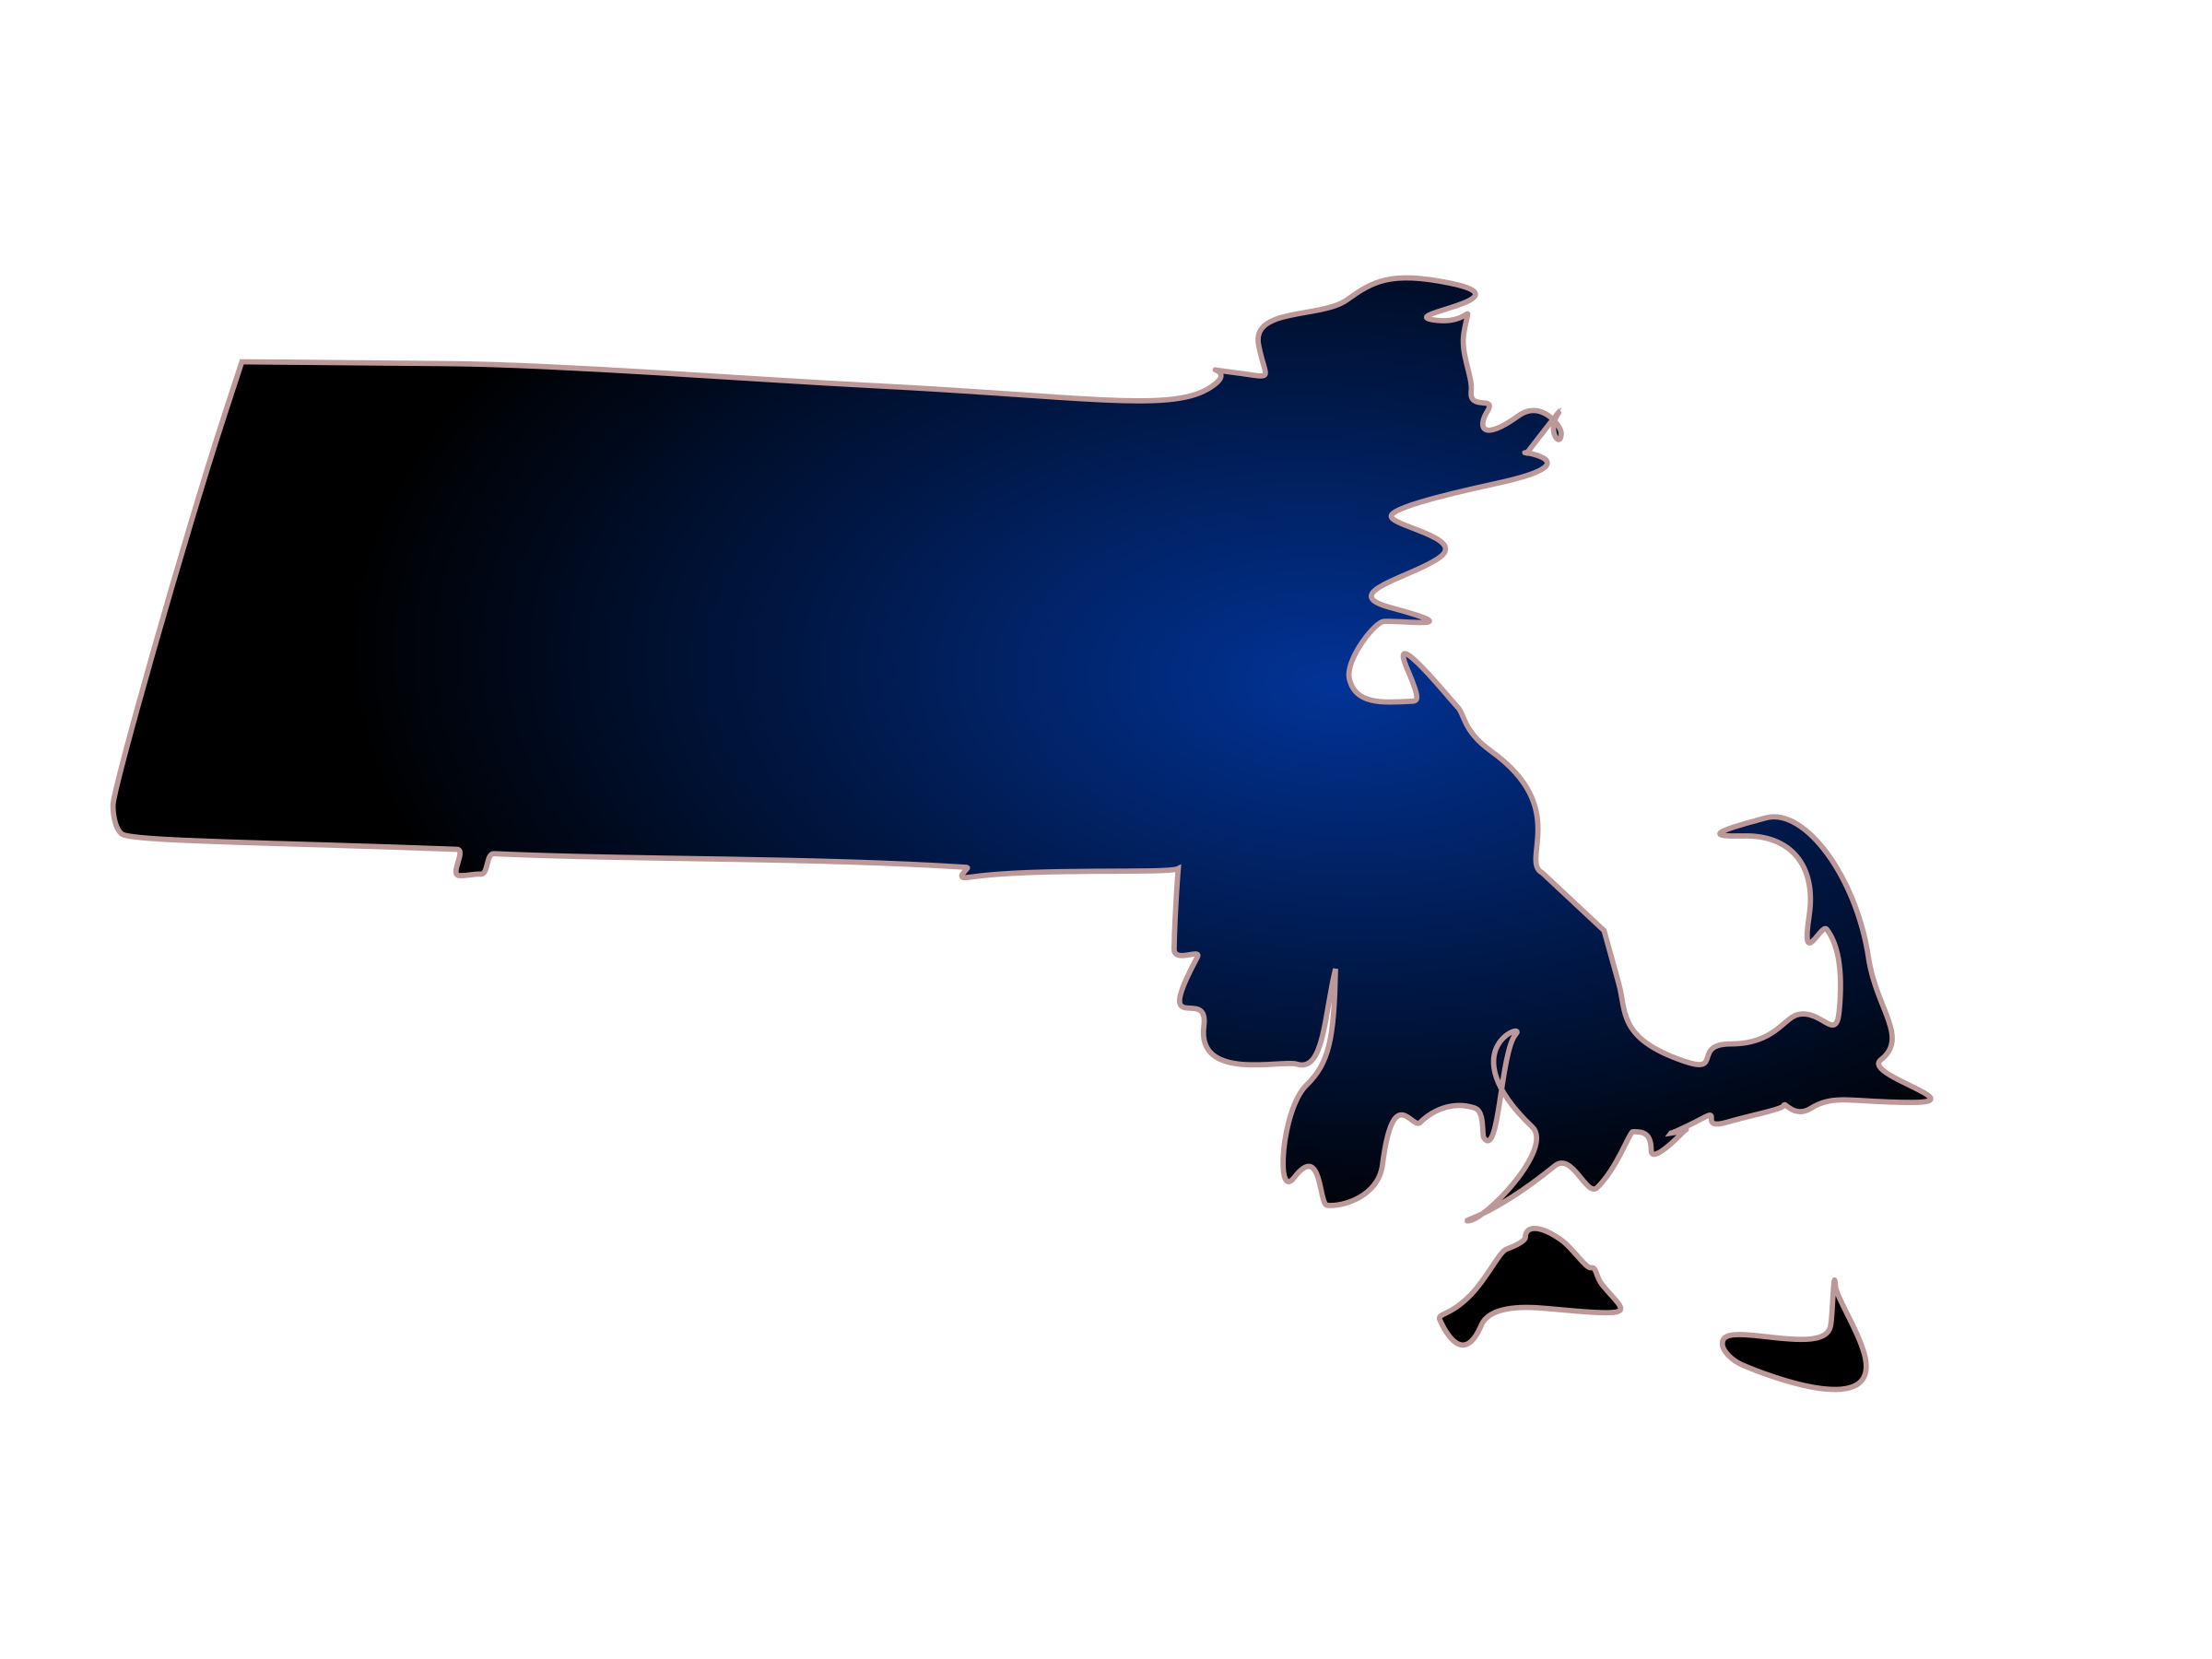 Massachusetts by netalloy